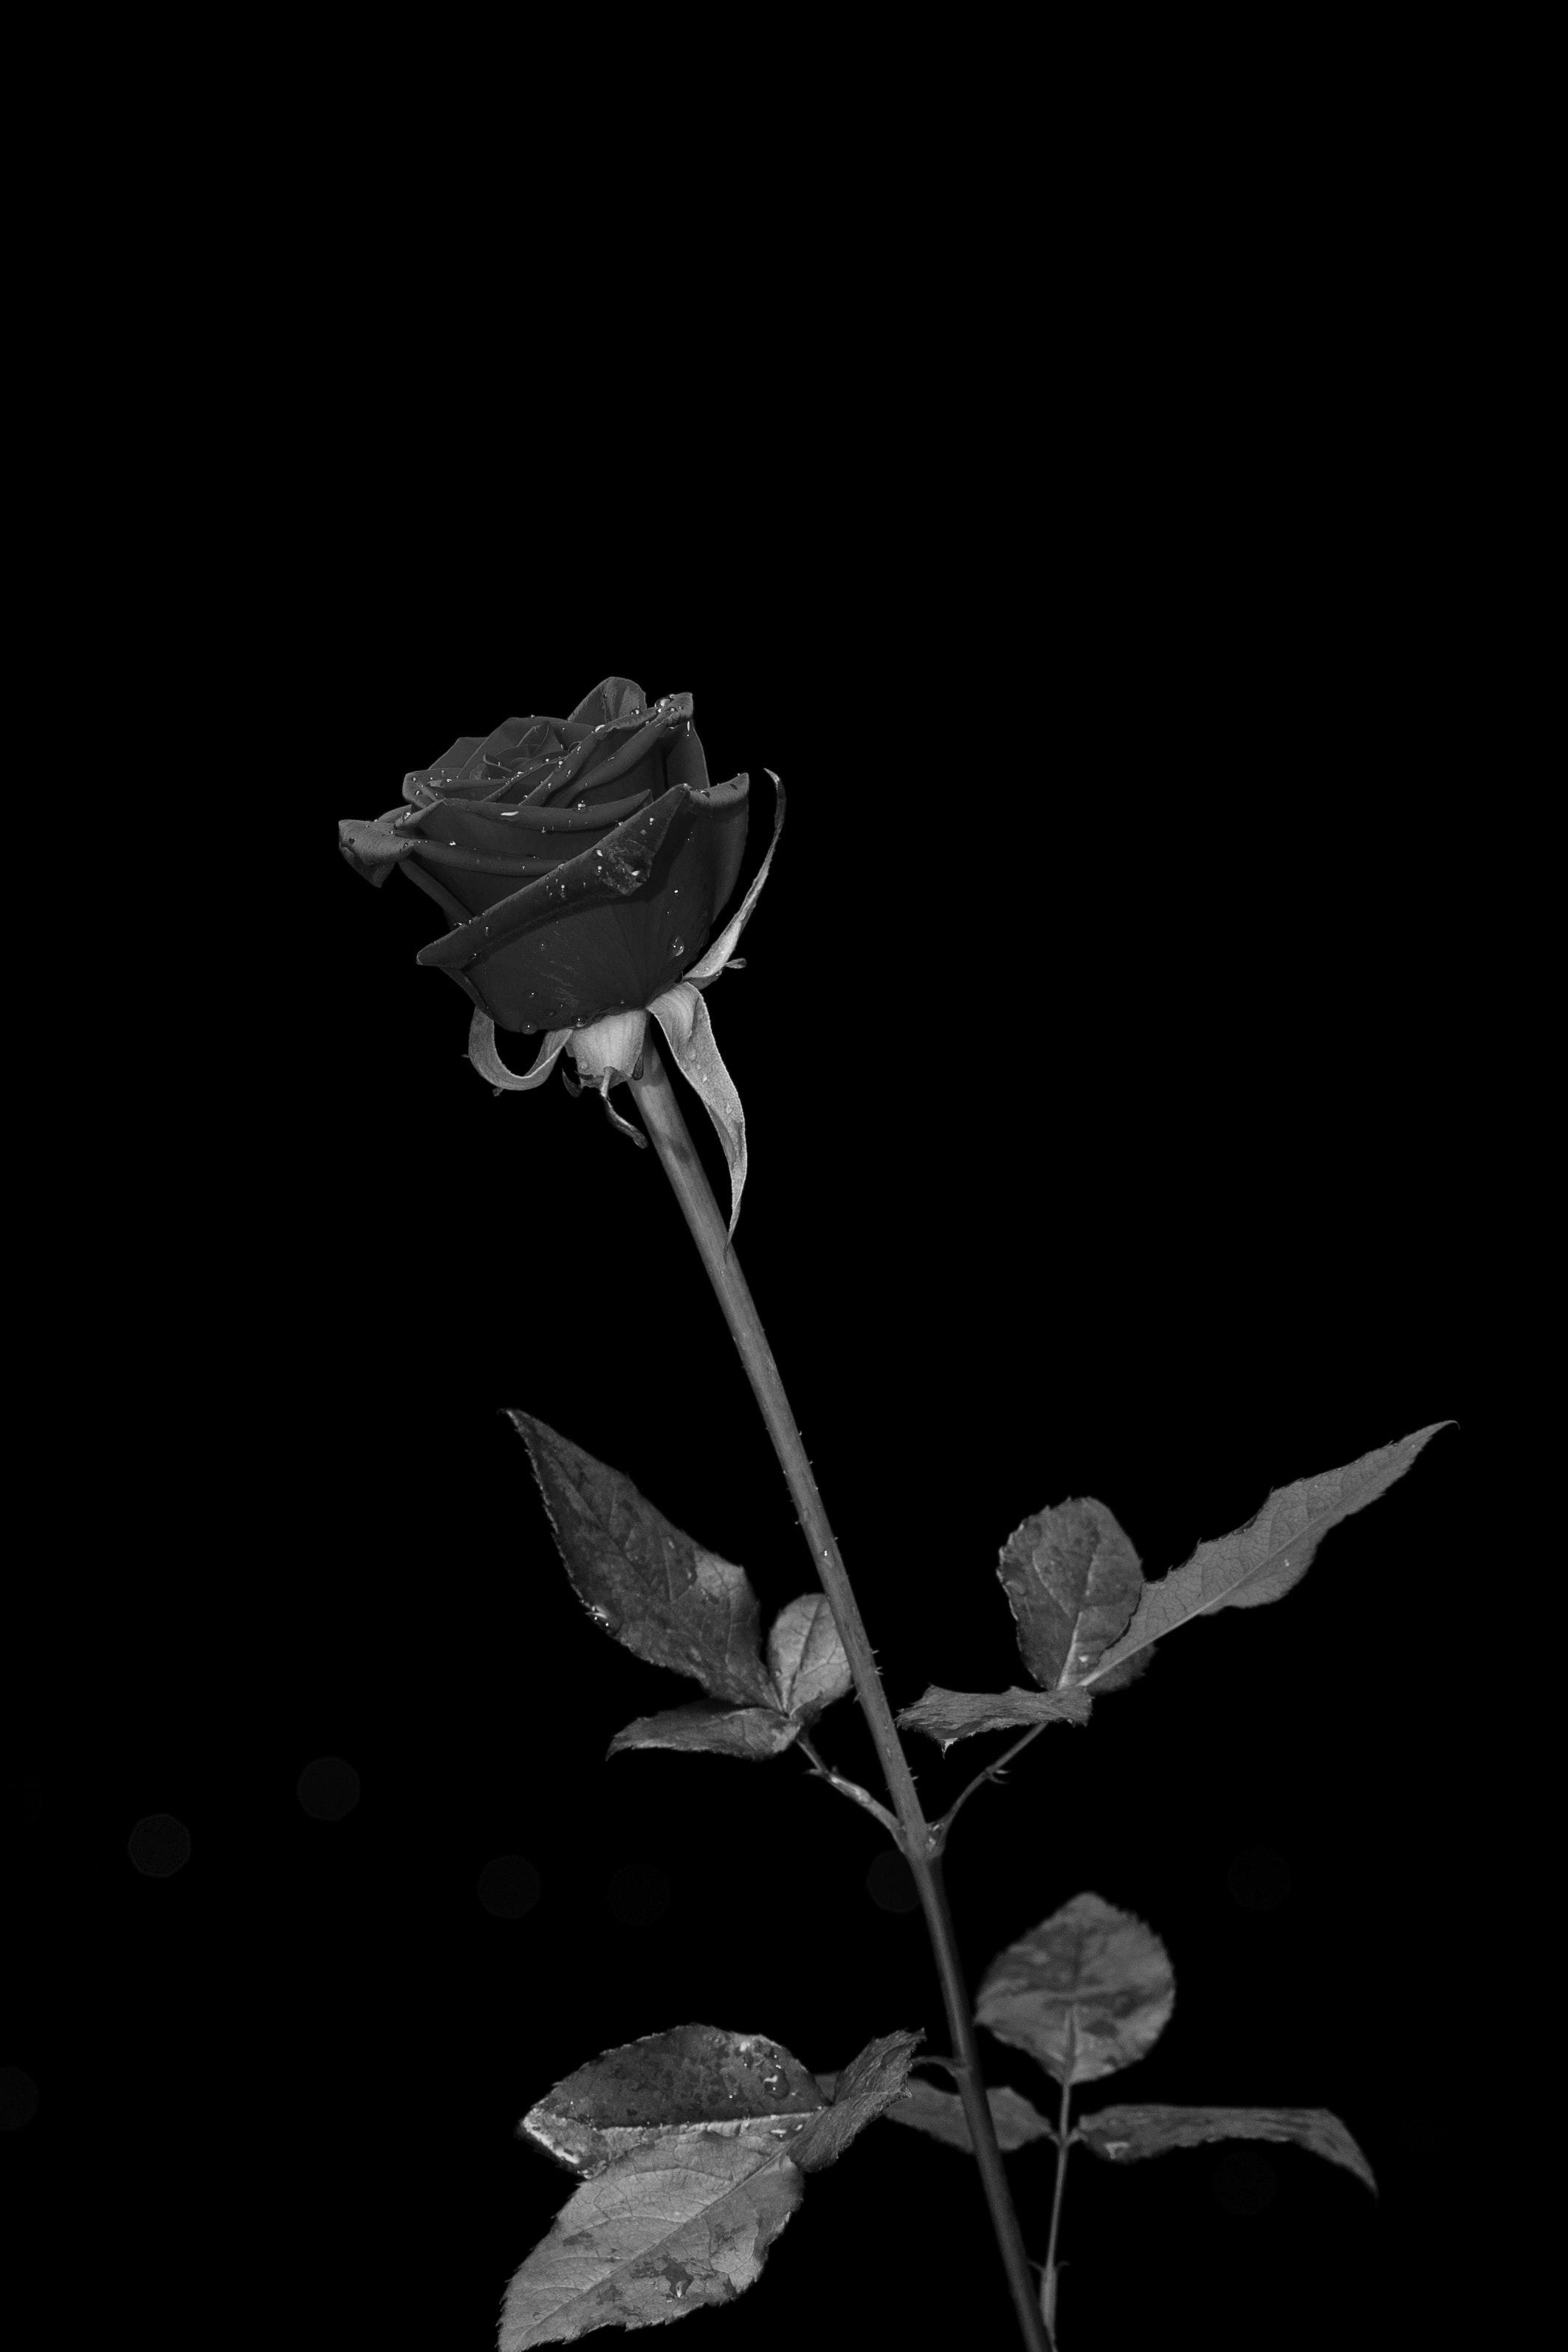 flower image in greyscale